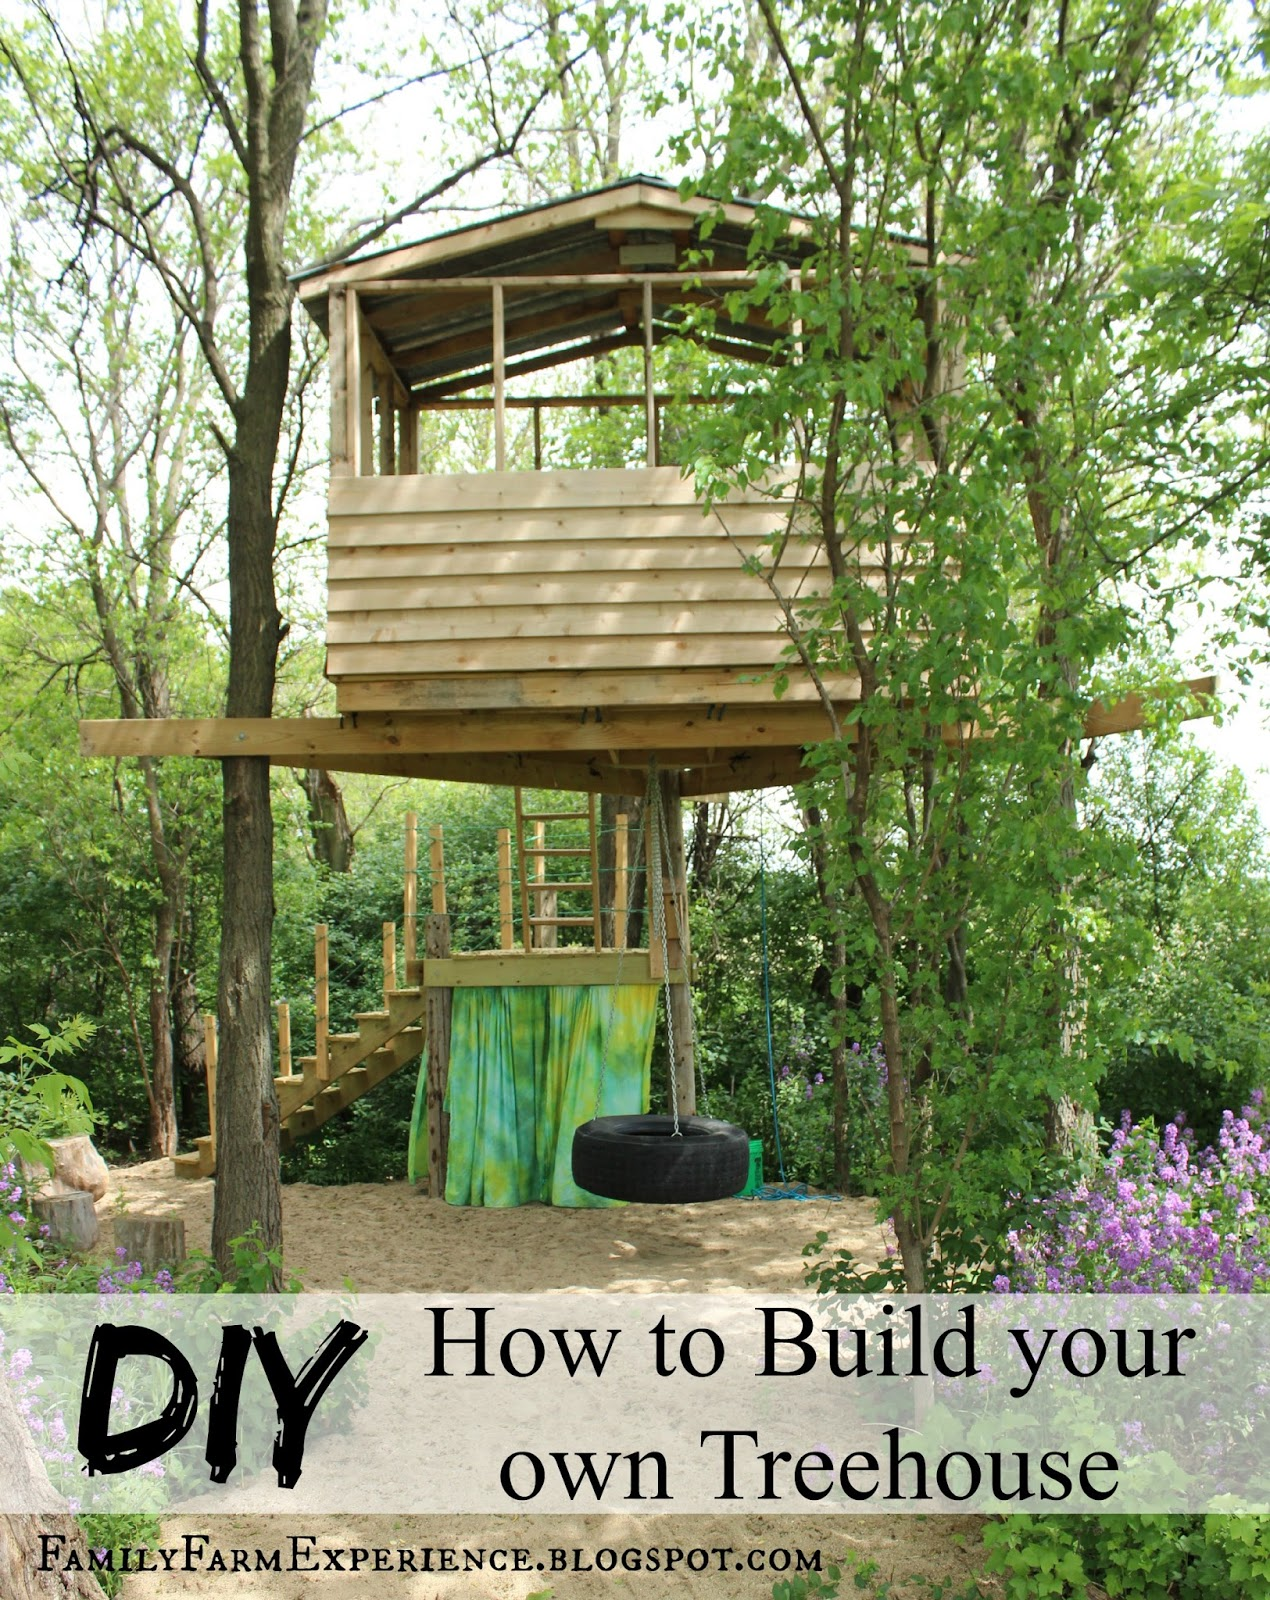 Family farm experience diy how to build your own treehouse for House to build your own house